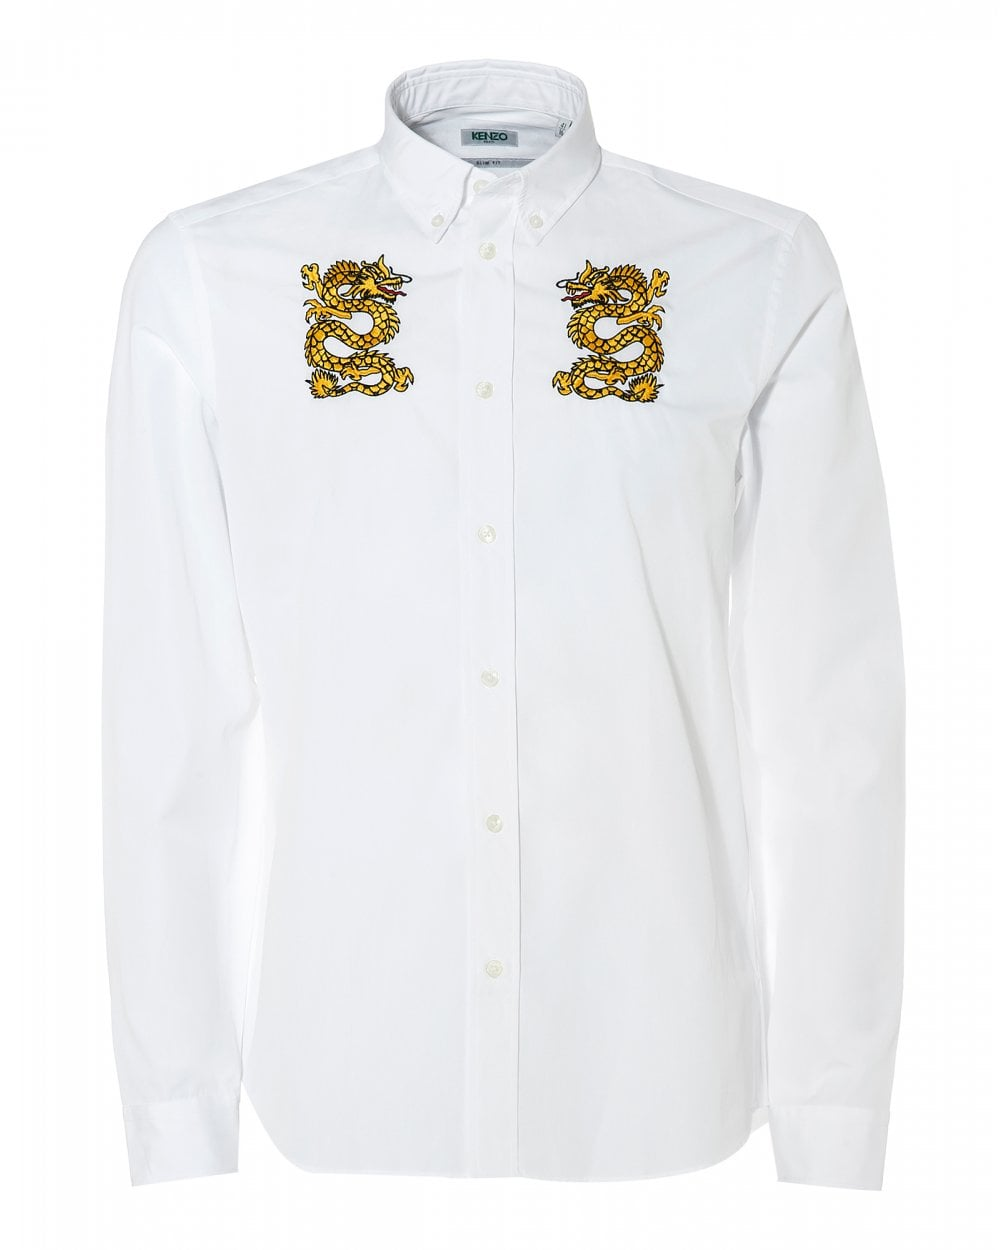 bf5a3aed Kenzo Mens Two Dragons Button Down White Printed Shirt